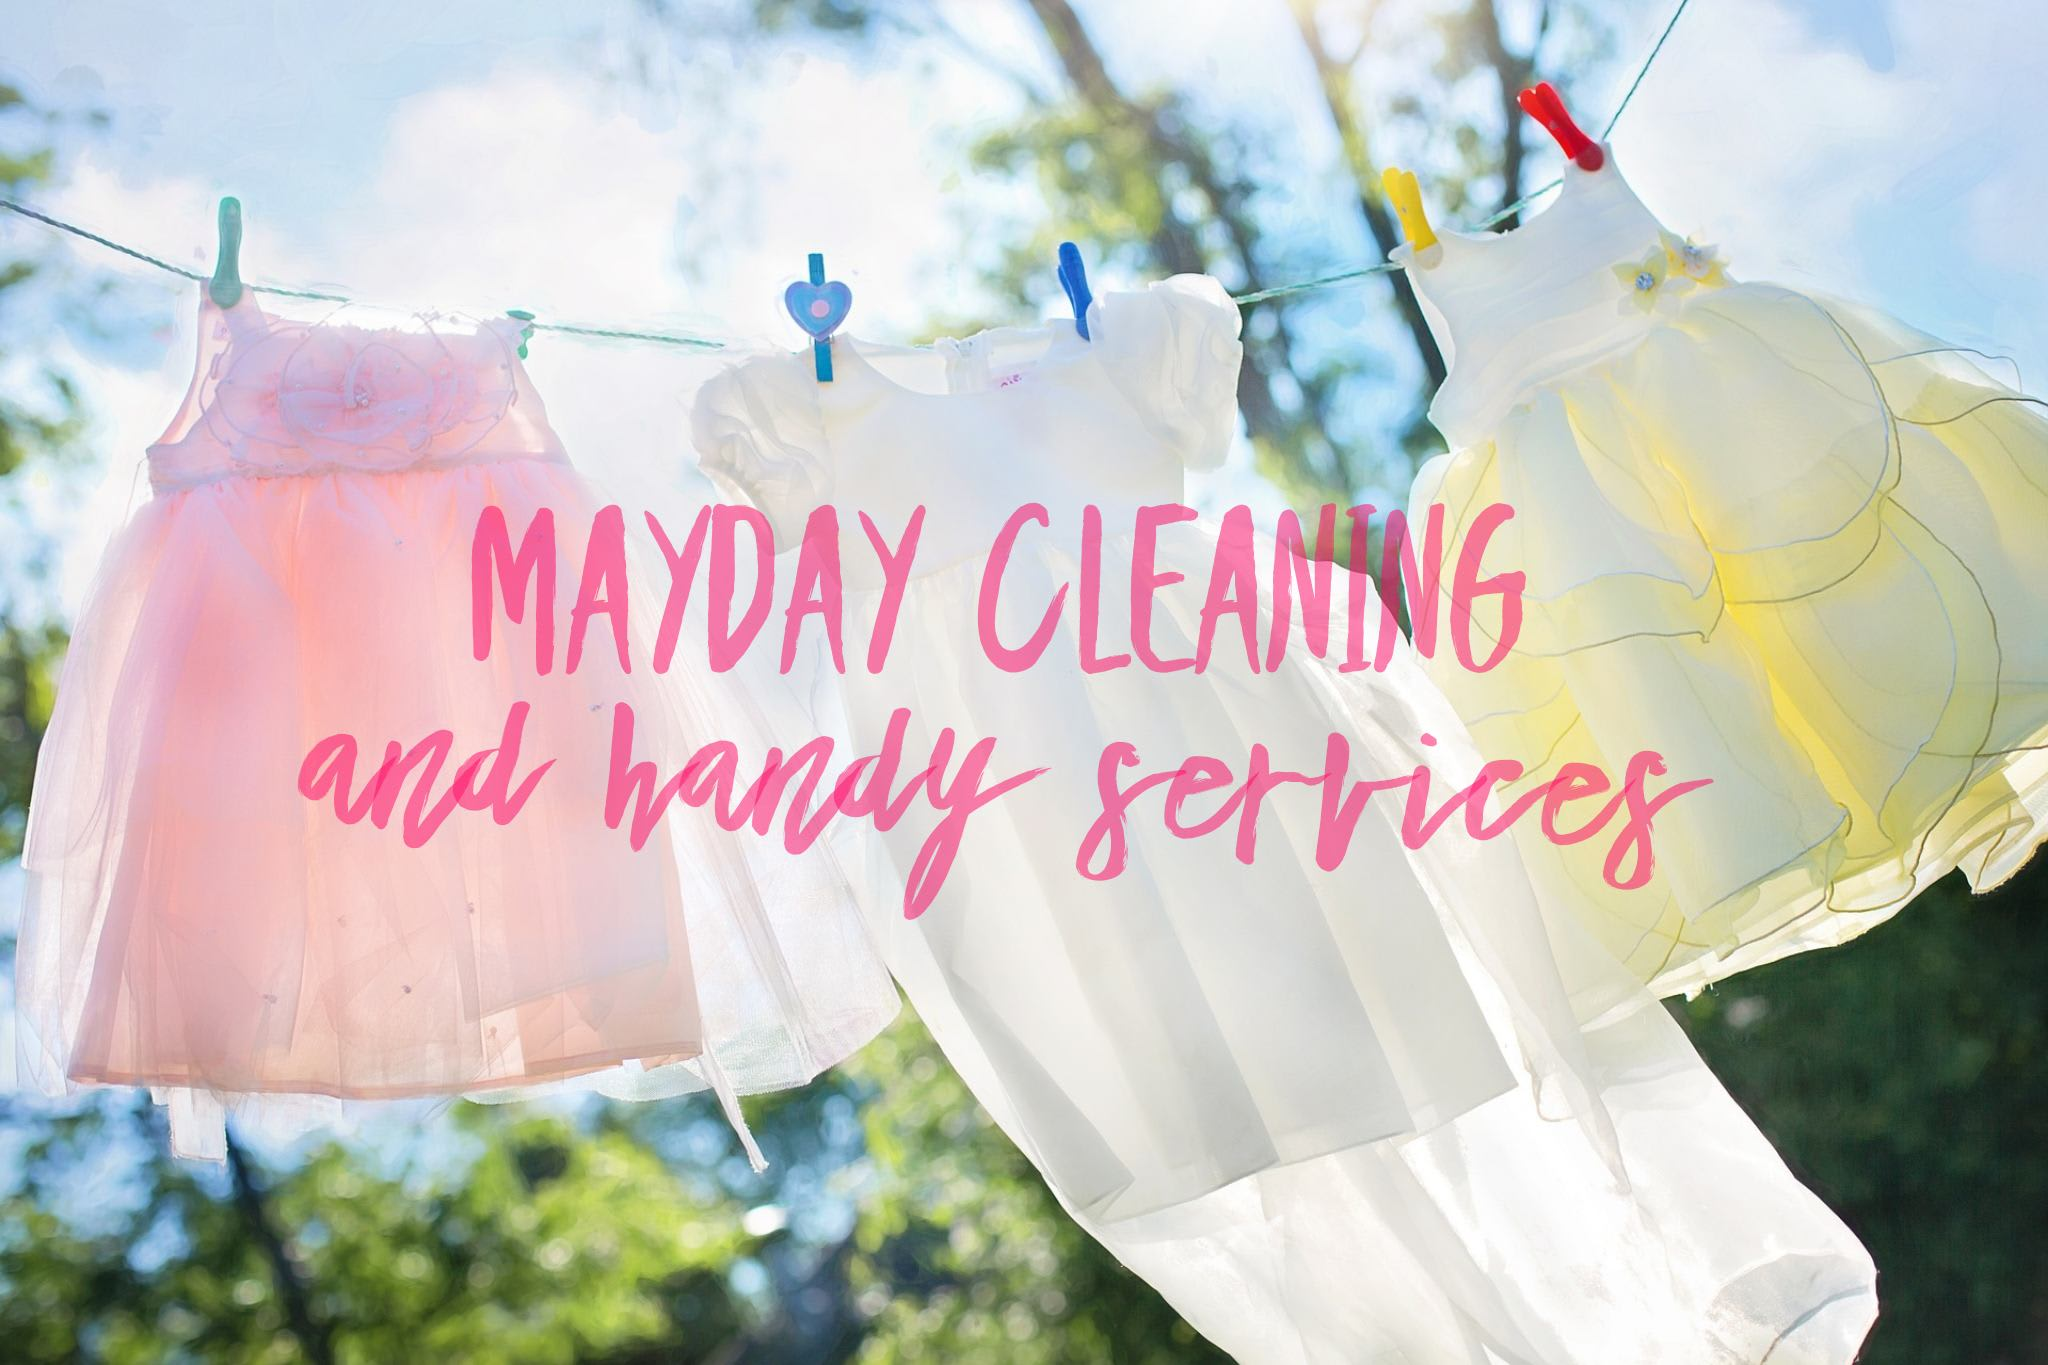 Mayday Cleaning And Handy Services